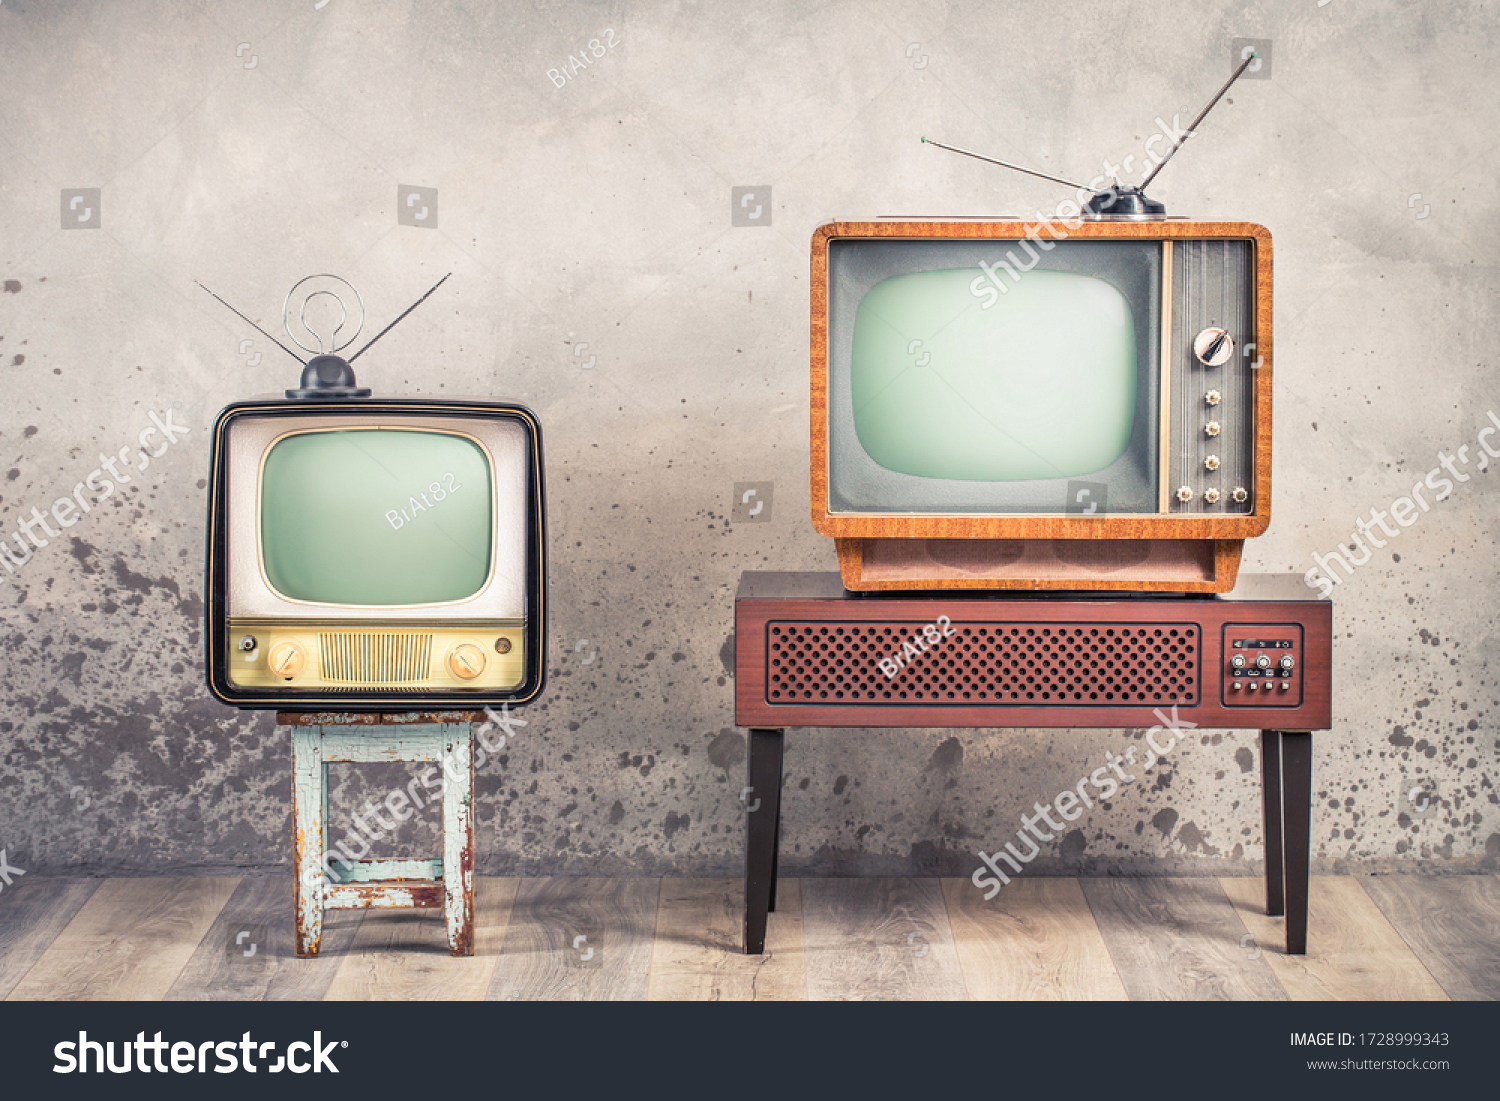 Two old retro classic analog CRT TV set receivers and aged wooden television stand with outdated amplifier front aged concrete wall background. Broadcasting, news concept. Vintage style filtered photo #1728999343